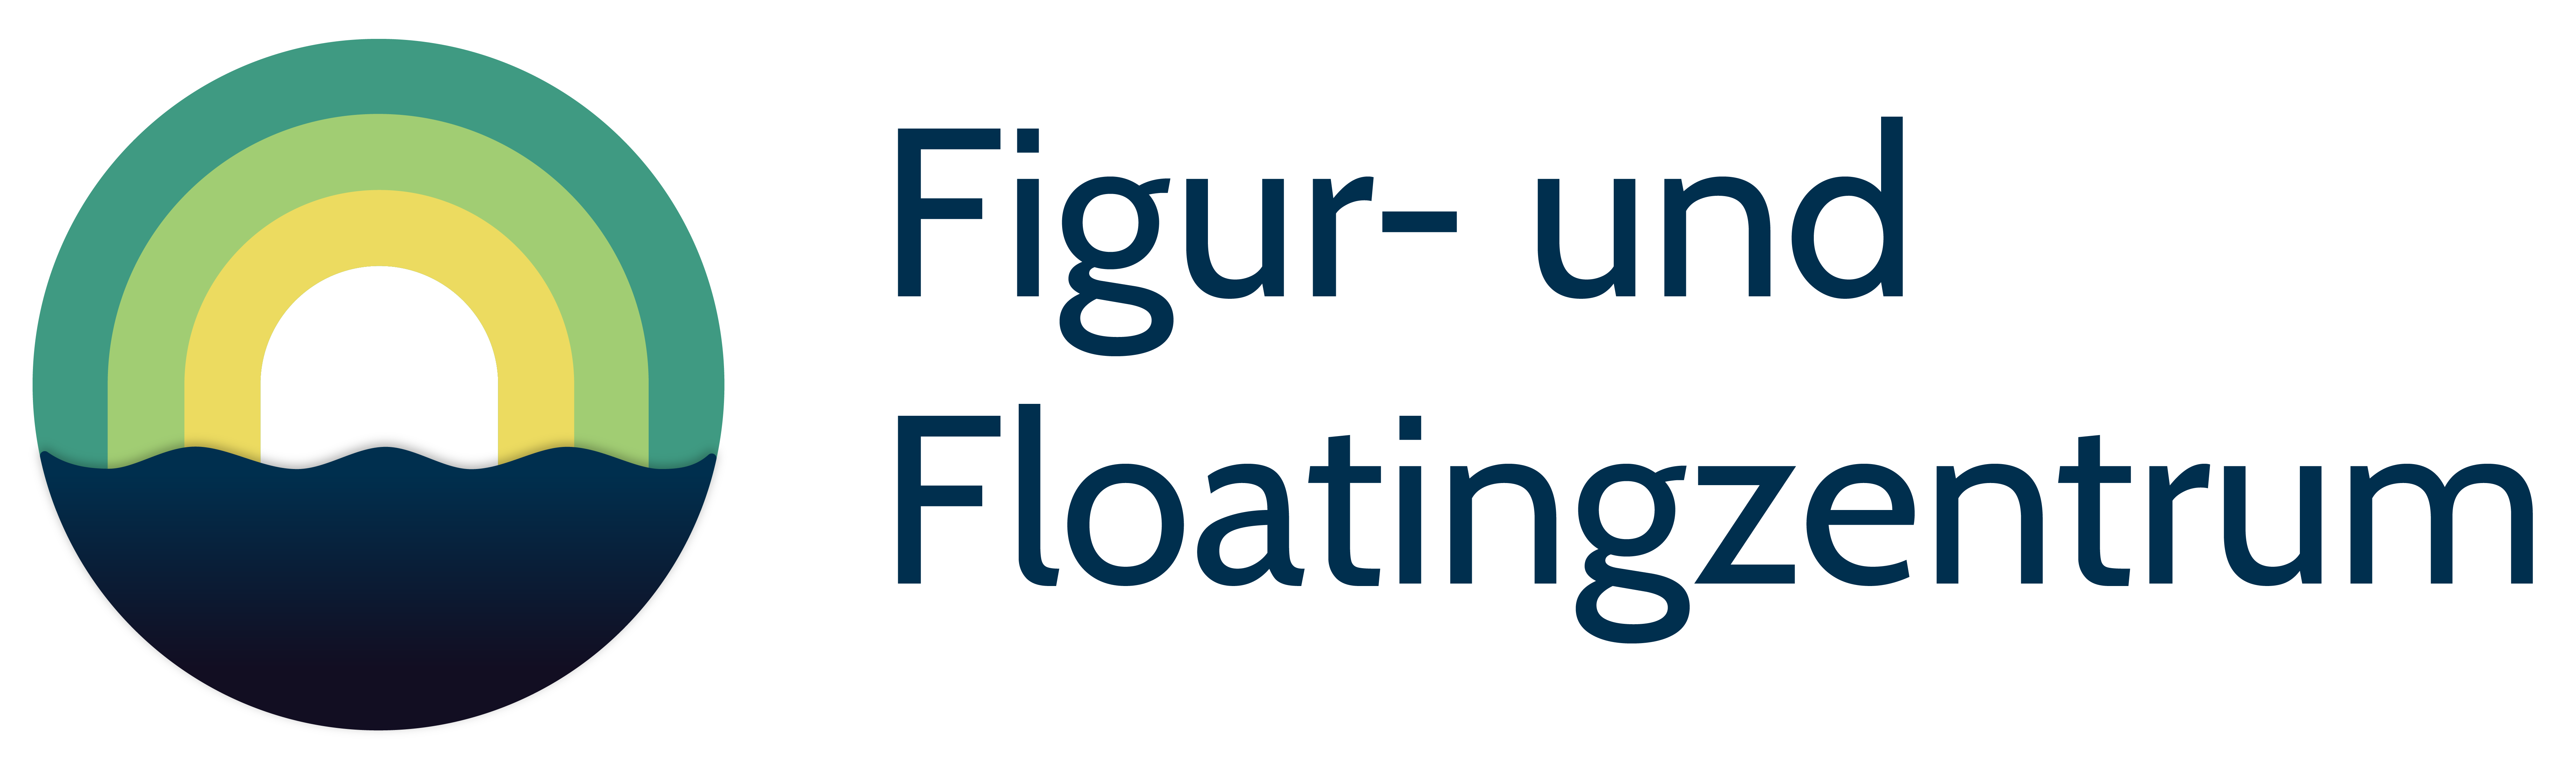 Logo - Figur- und Floatingzentrum Kempten